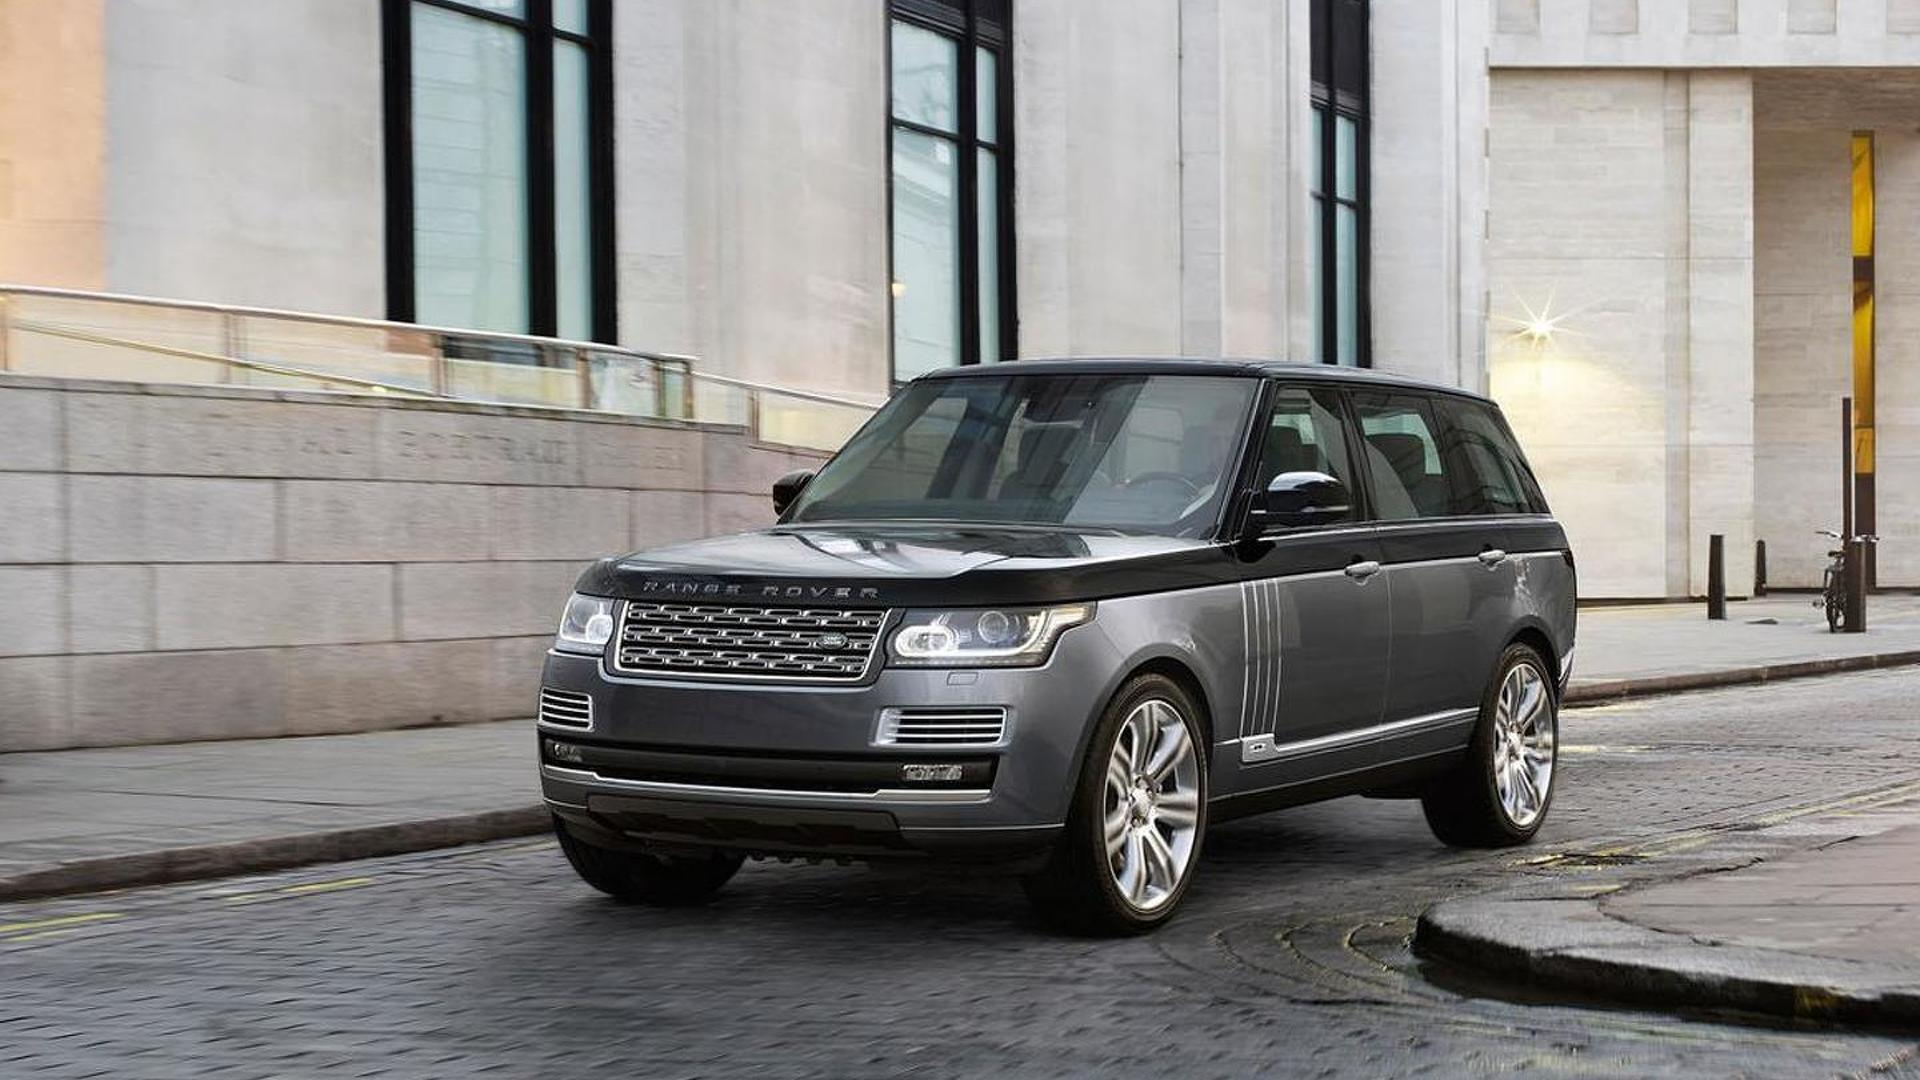 picture. Land Rover Range Rover